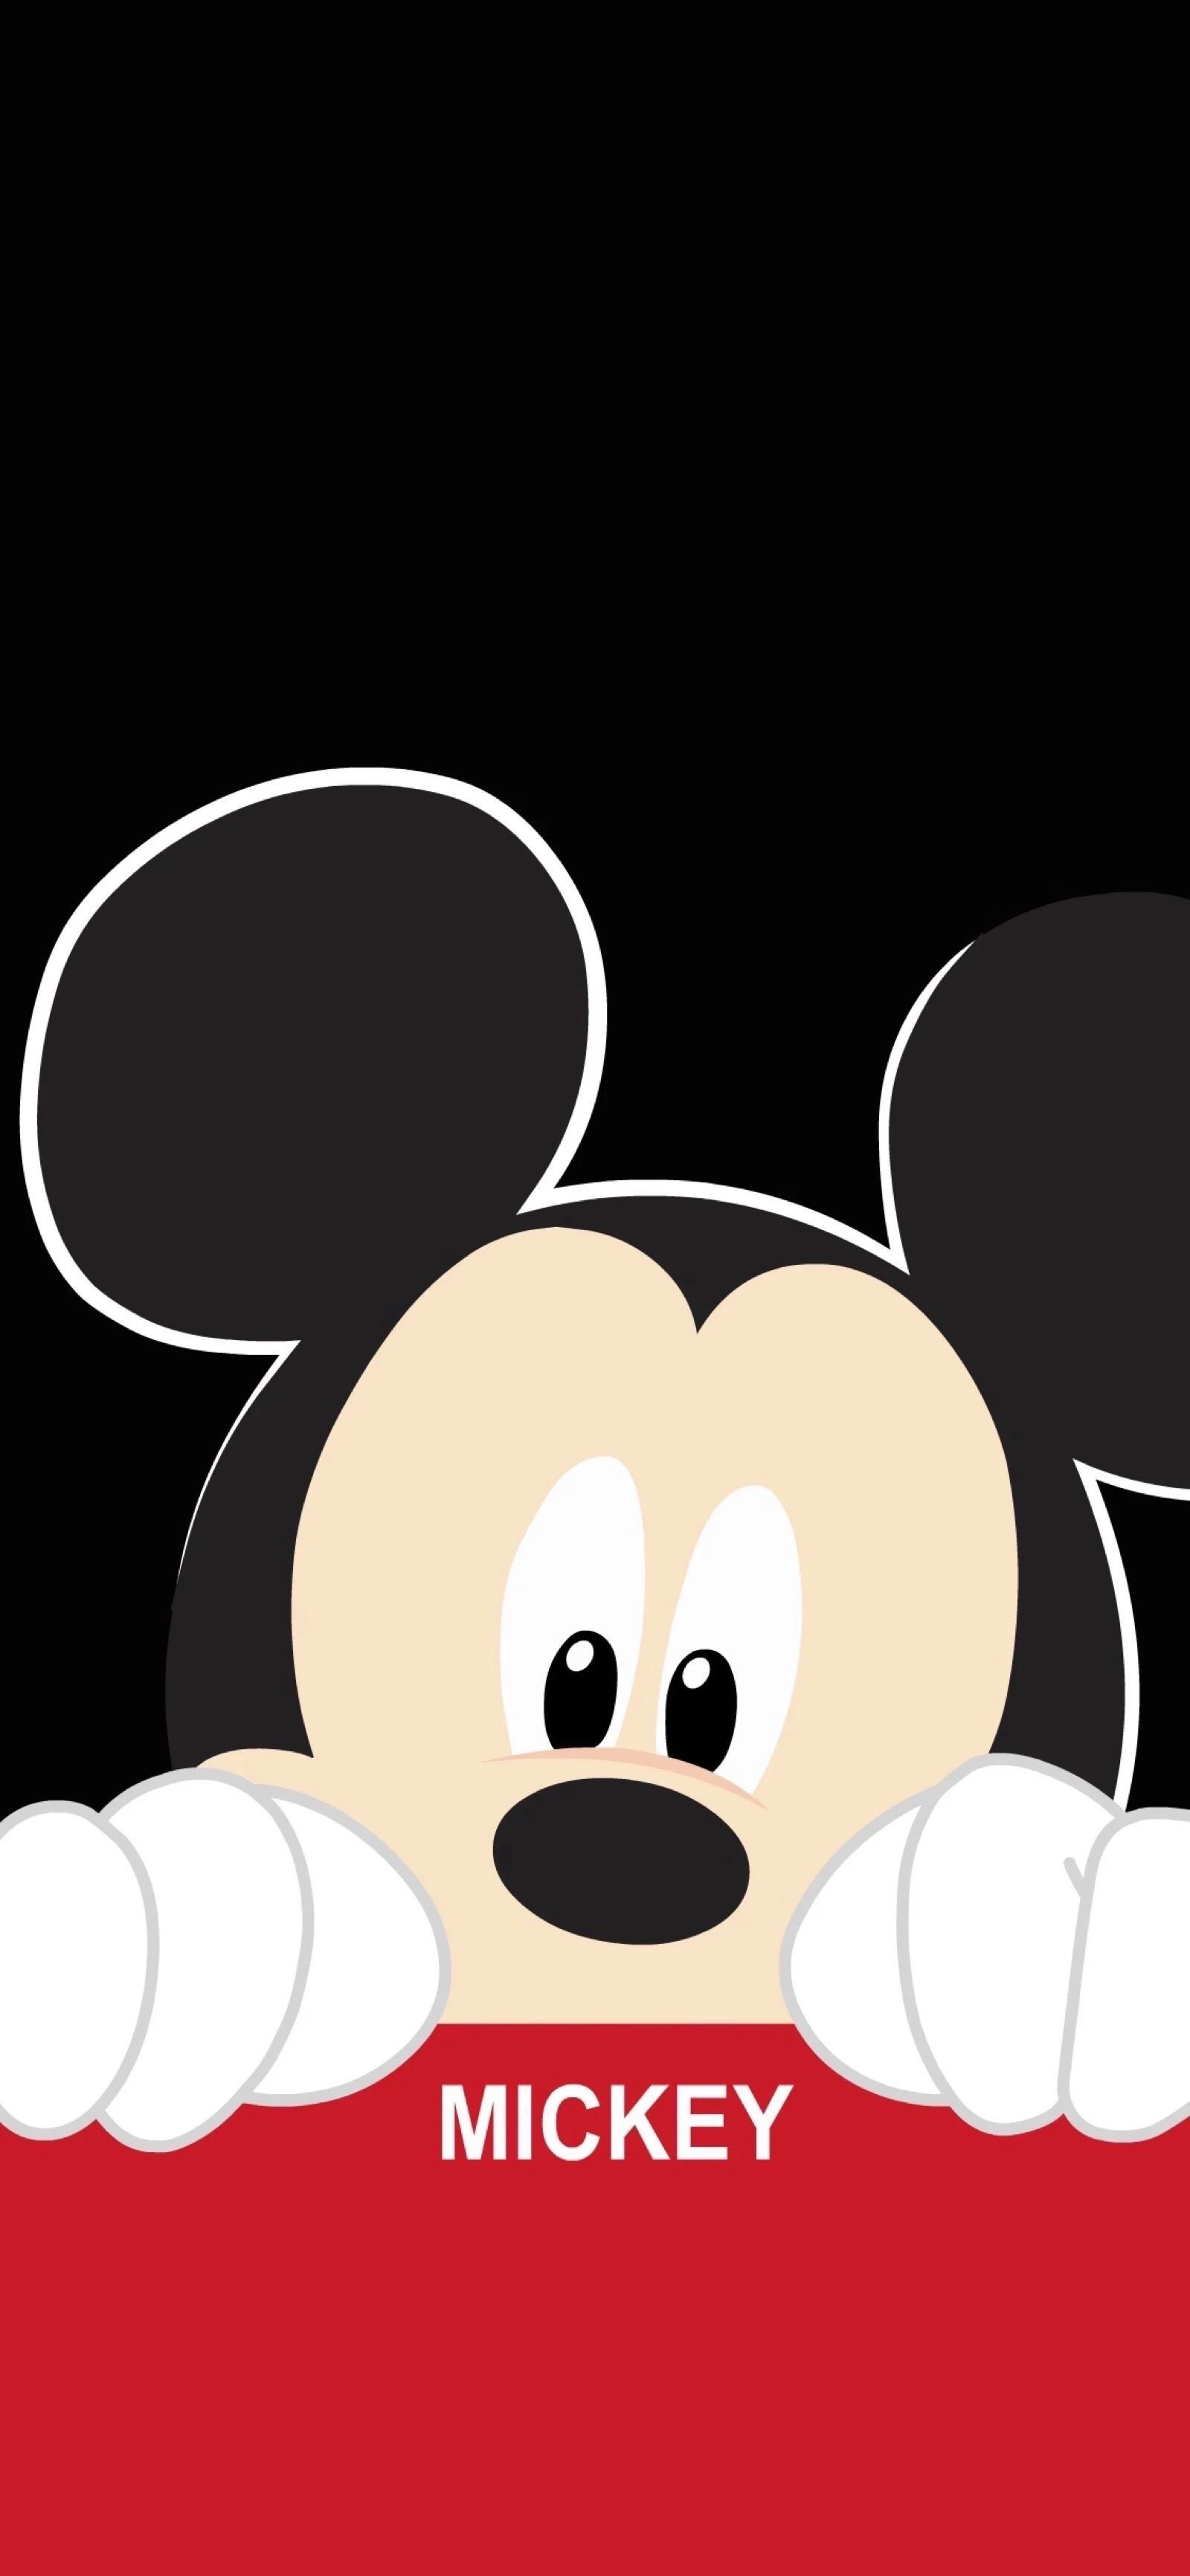 Mickey Mouse Iphone X Wallpapers Top Free Mickey Mouse Iphone X Backgrounds Wallpaperaccess